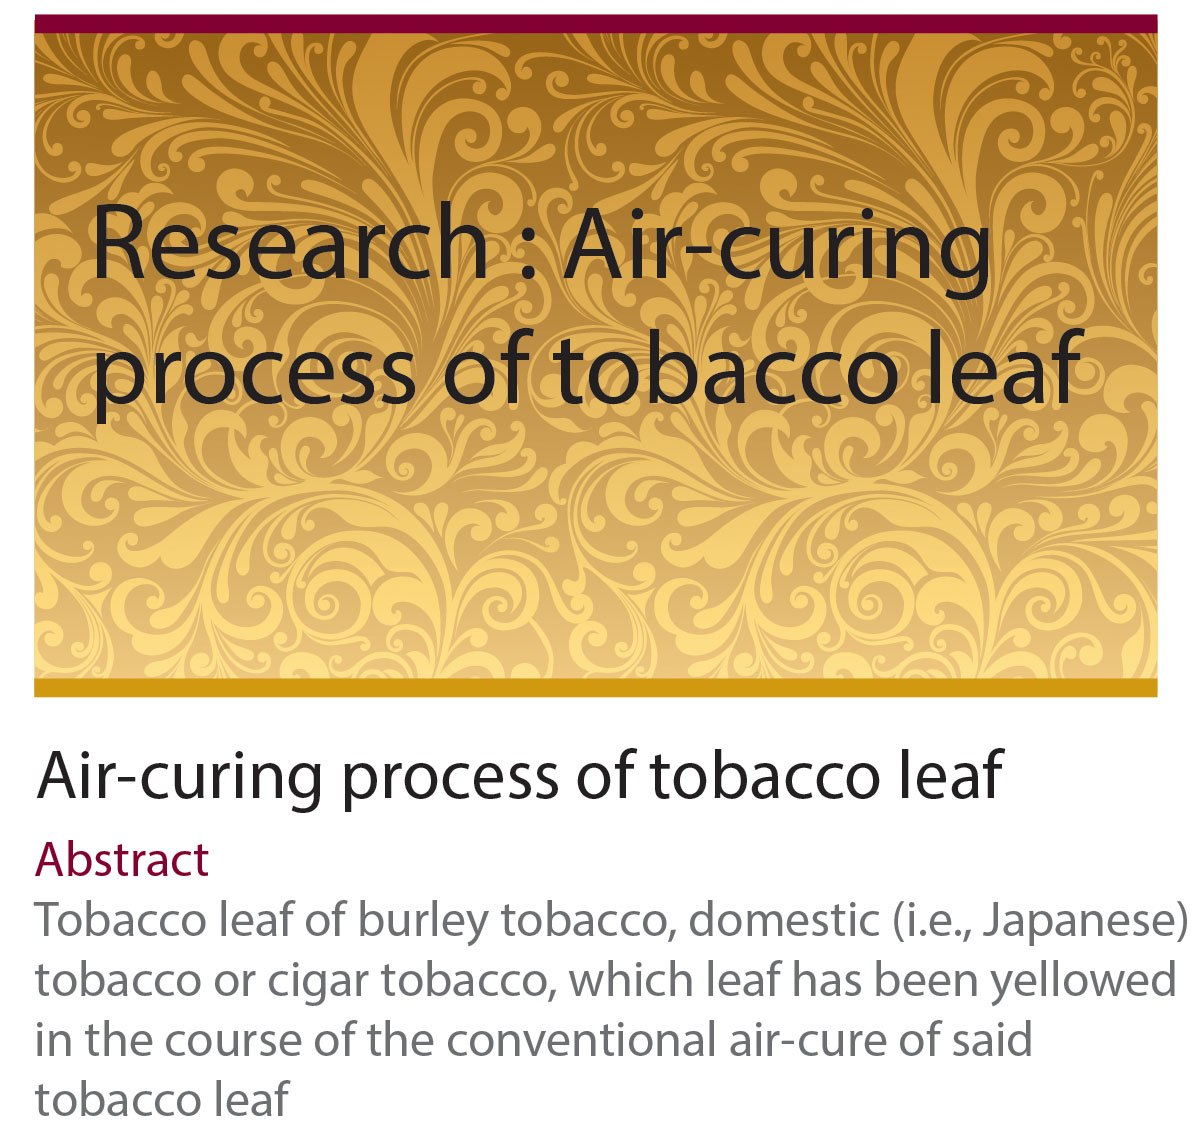 Research : Air-Curing process of tobacco leaf